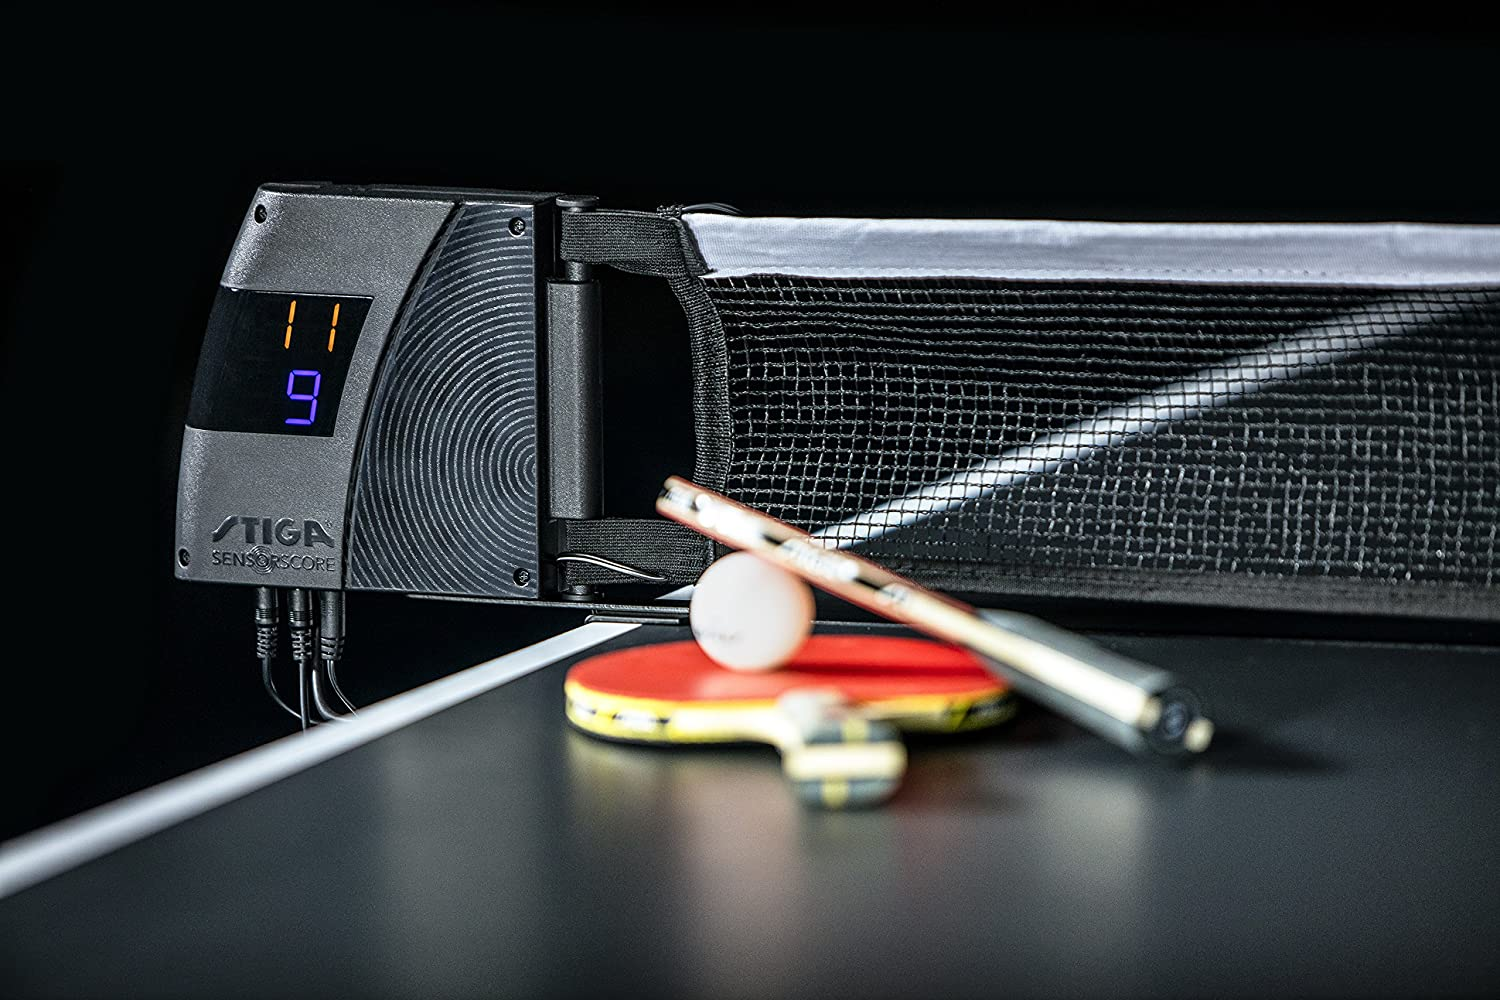 STIGA SensorScore – The Only Fully-Automated Table Tennis Scoring System with Innovative Sensor Technology : Sports & Outdoors